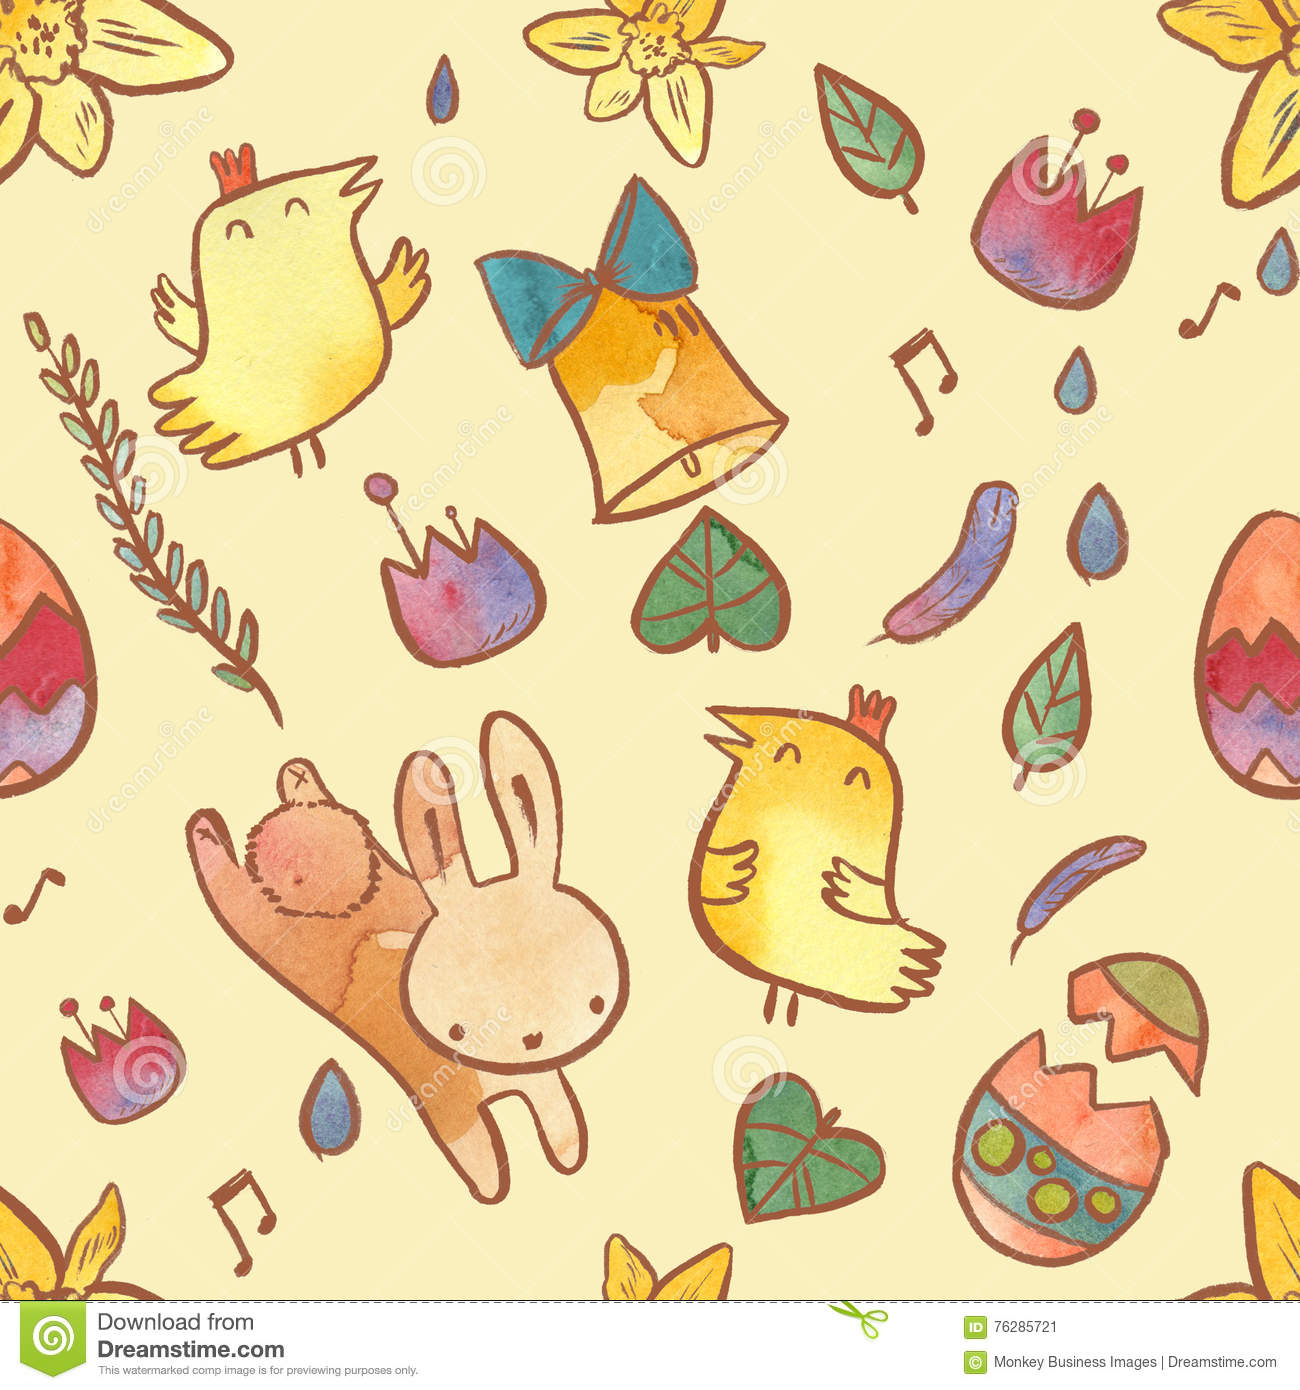 Watercolor seamless pattern on Easter theme. Easter background with bunny, chicks, eggs and flowers